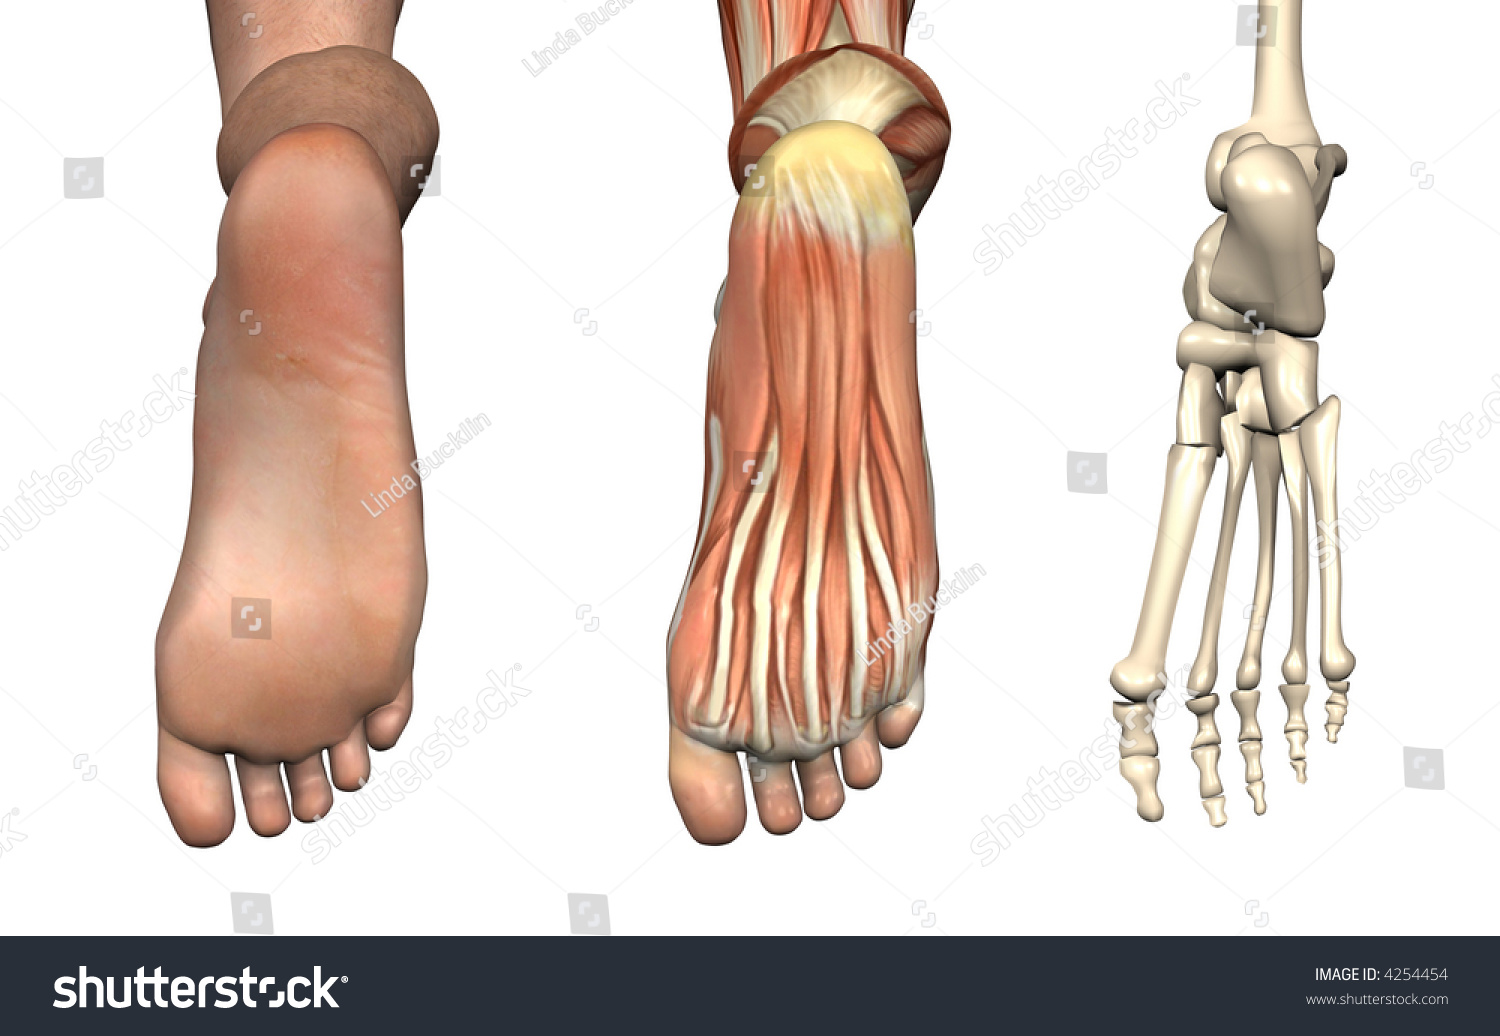 Anatomical Overlays Bottom Foot These Images Stock Illustration ...